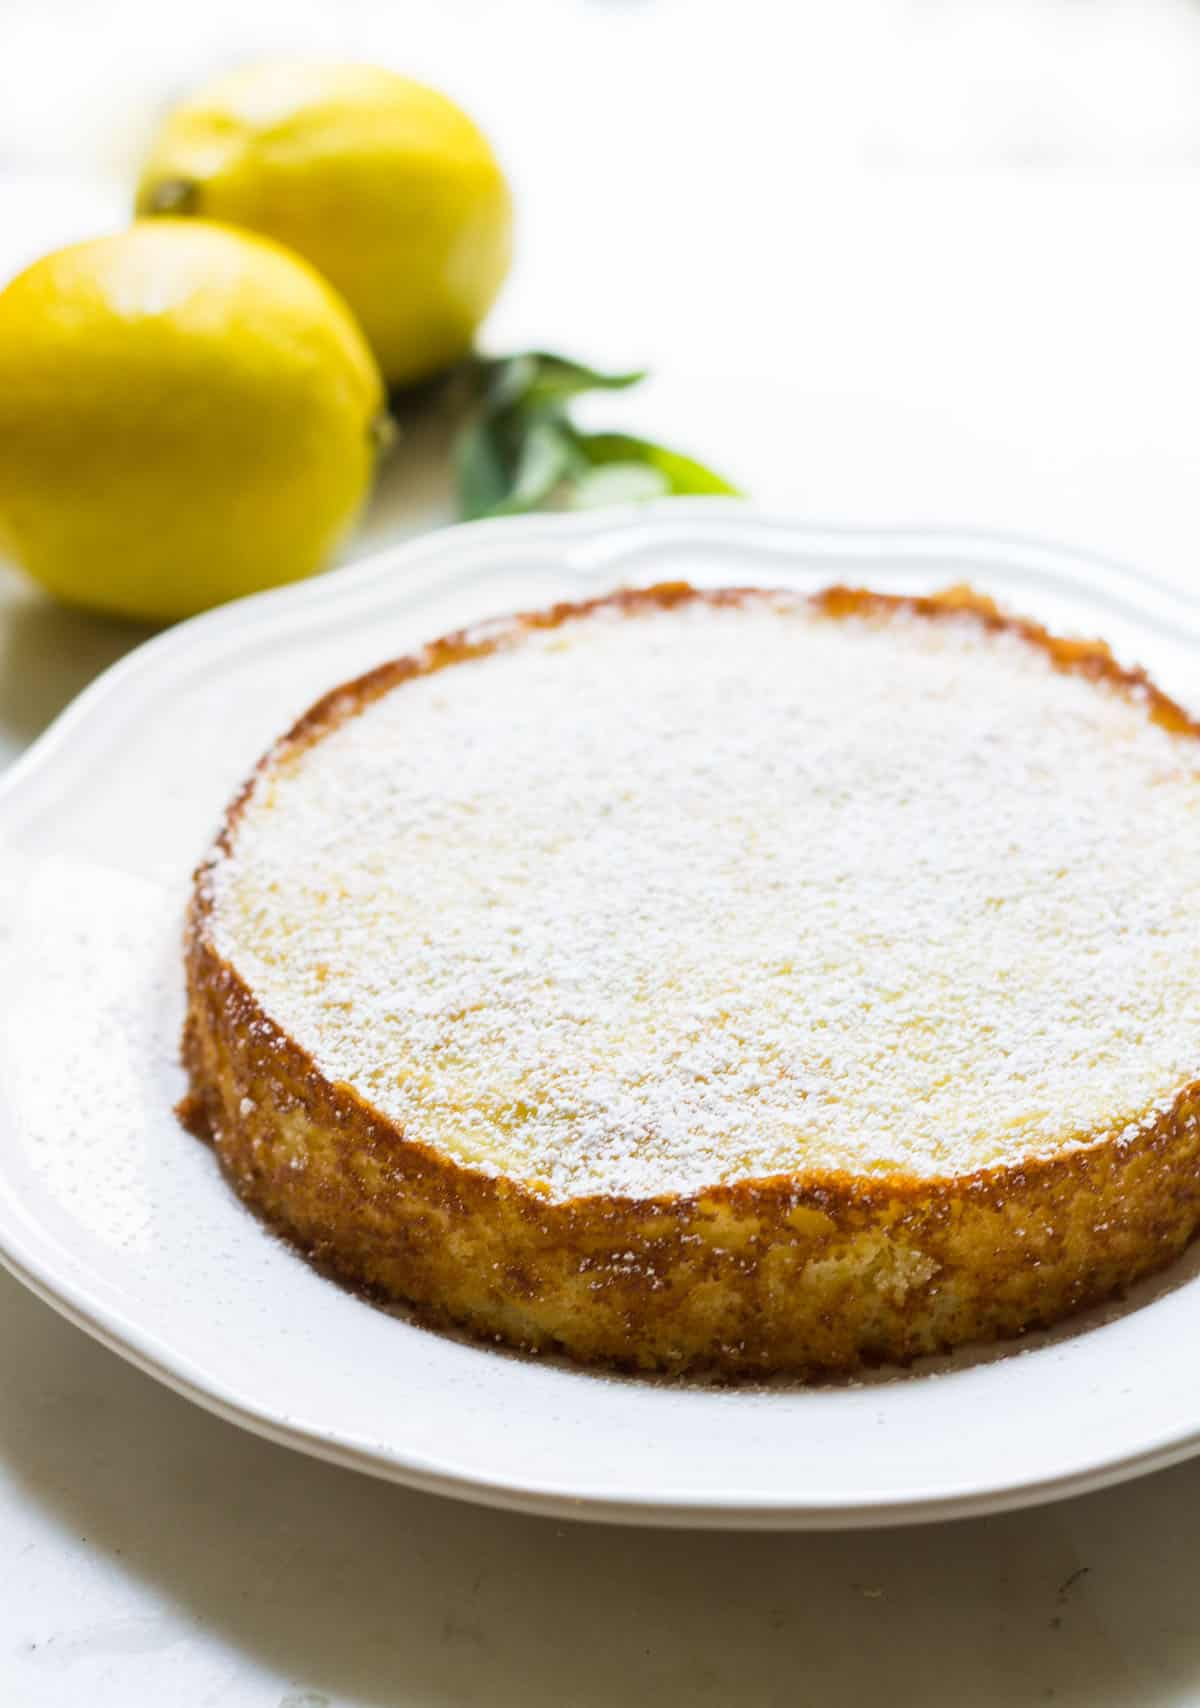 Lemon Ricotta Cake: a simple and super easy cake made with ricotta cheese and lemon. So airy and moist! Recipe via MonPetitFour.com